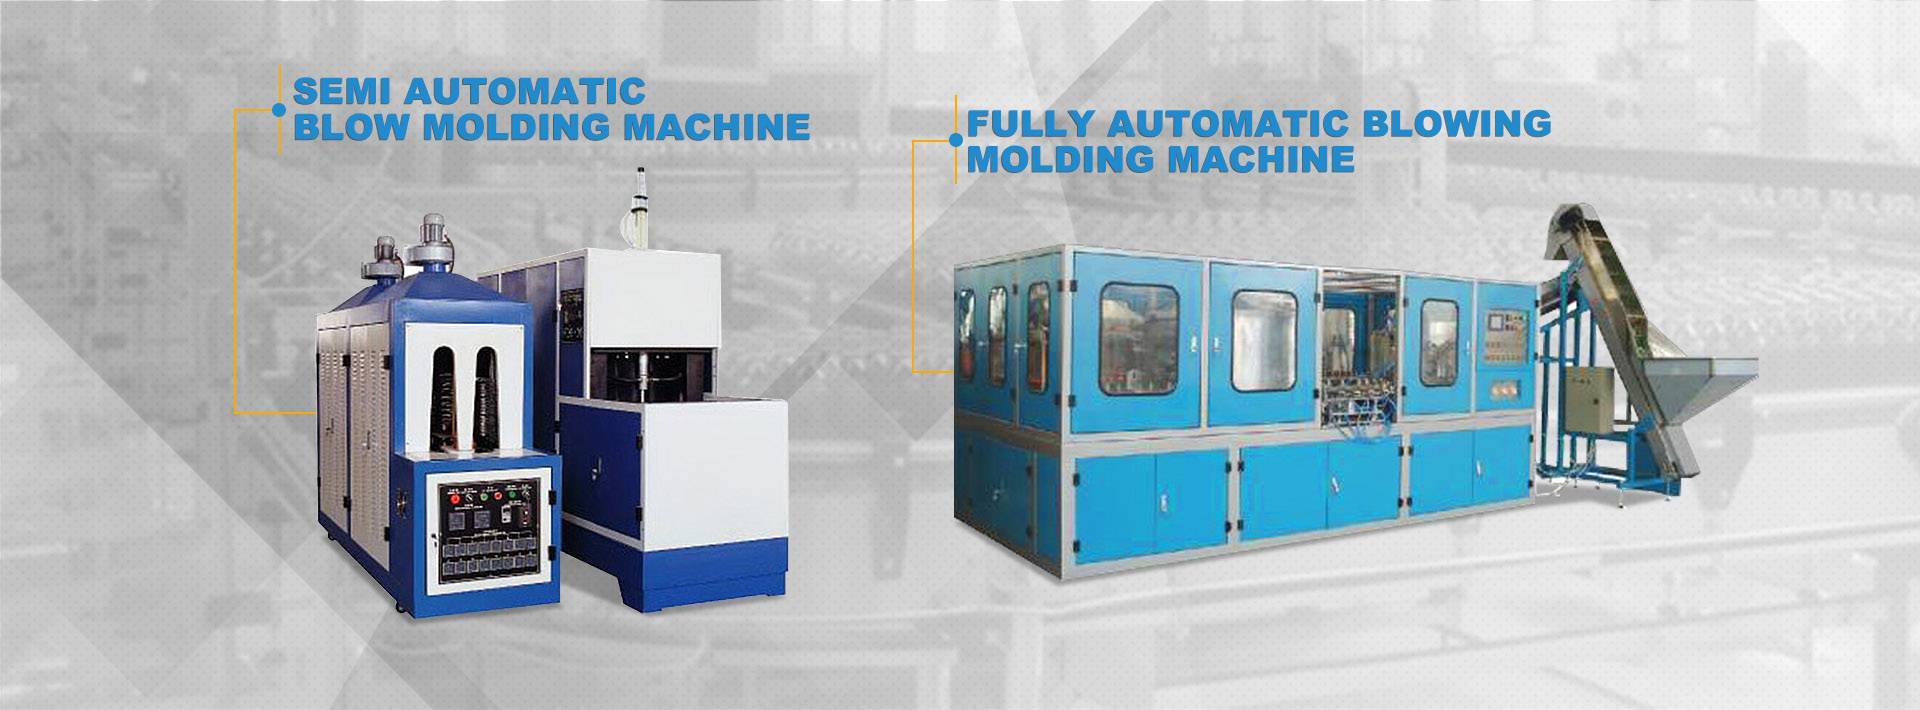 Semi okuzenzakalelayo Blow Molding Machine